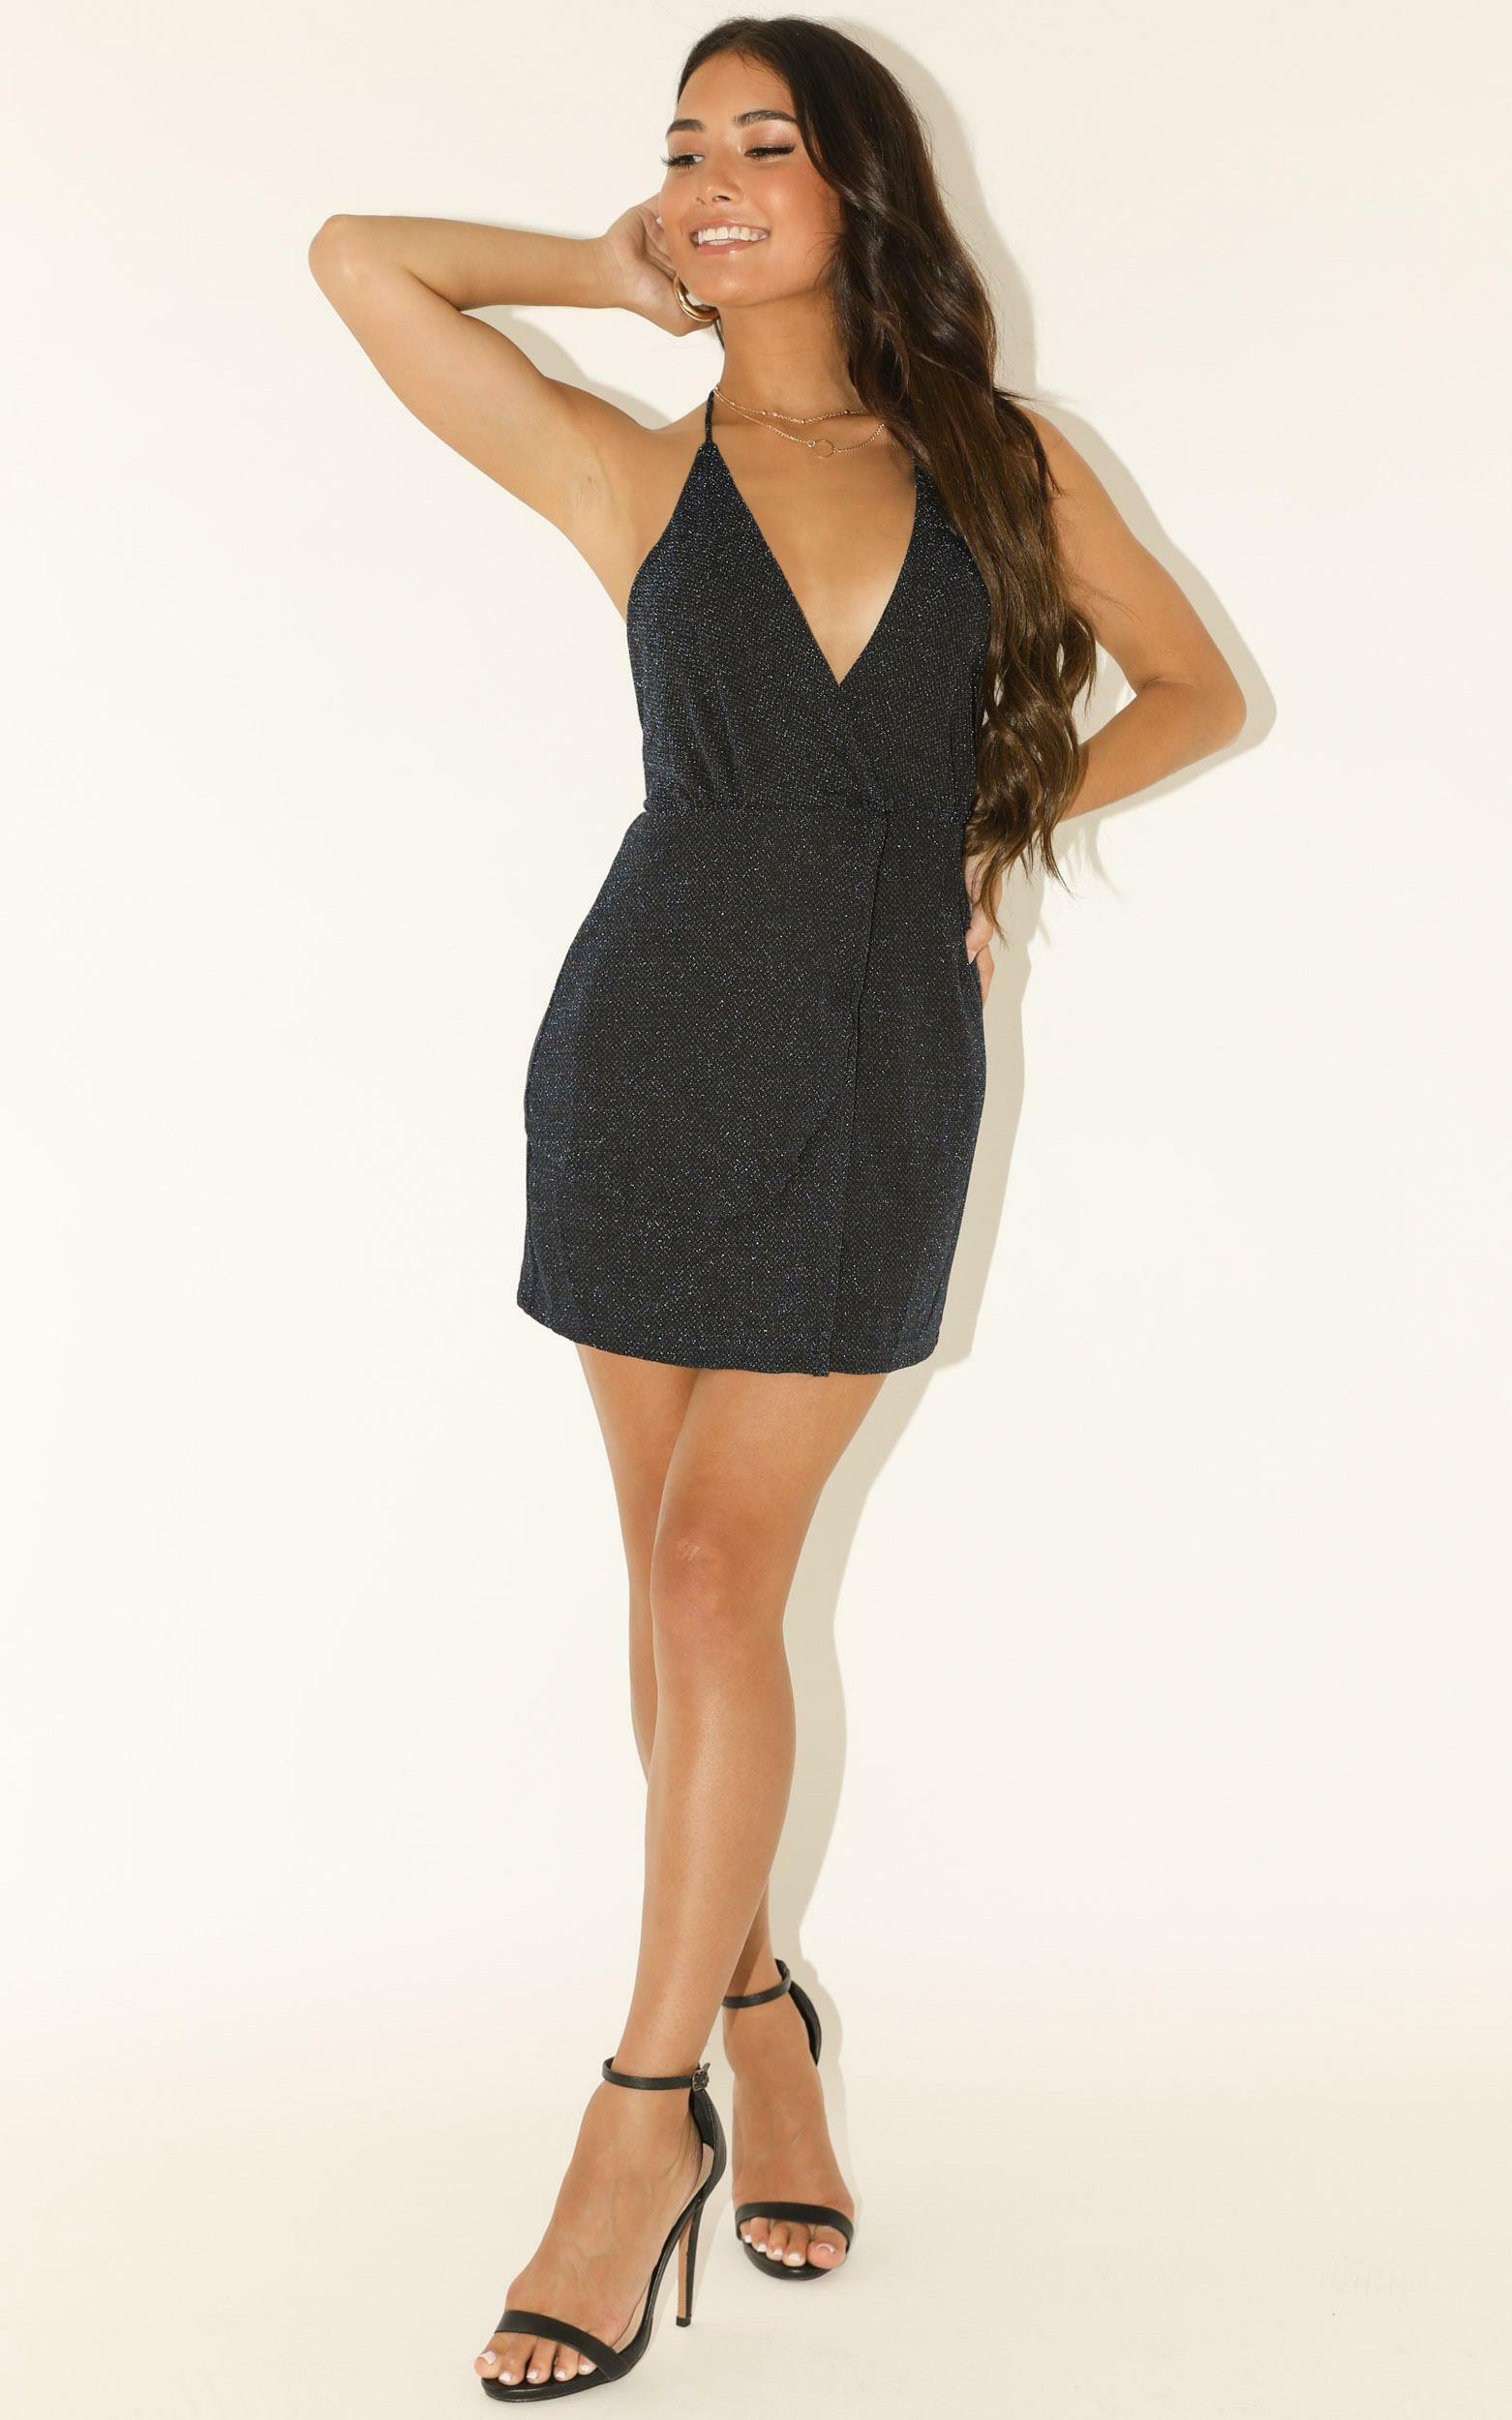 Lioness - Turn Heads Dress In Midnight Lurex - 12 (L), Navy, hi-res image number null